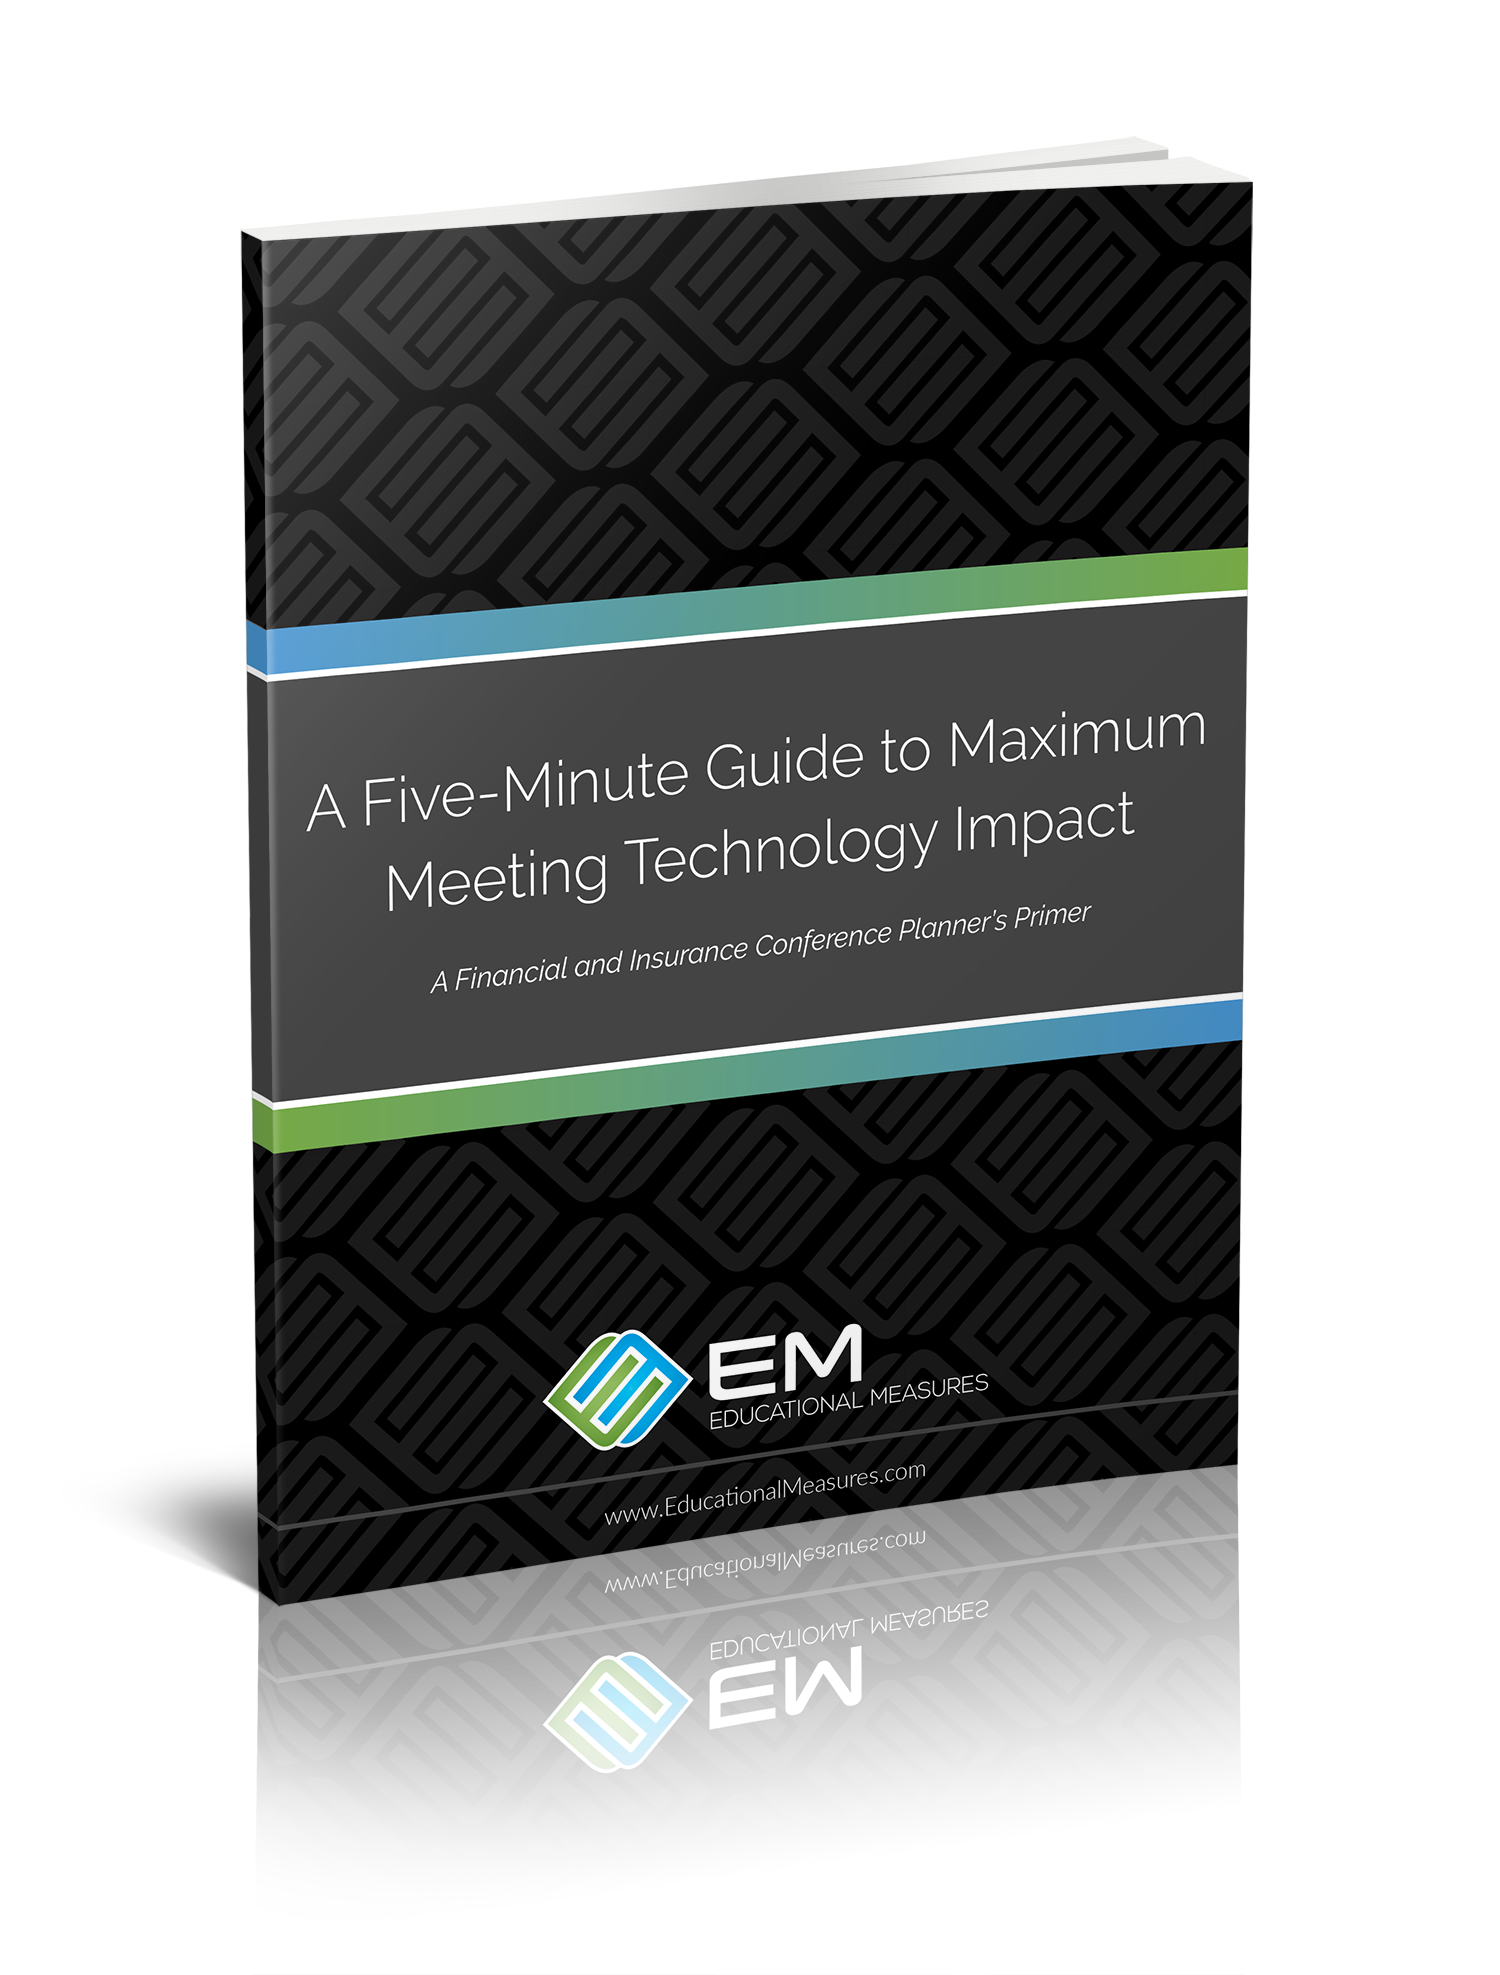 em-5-min-guide-max-meeting-tech-impact-FICP.png